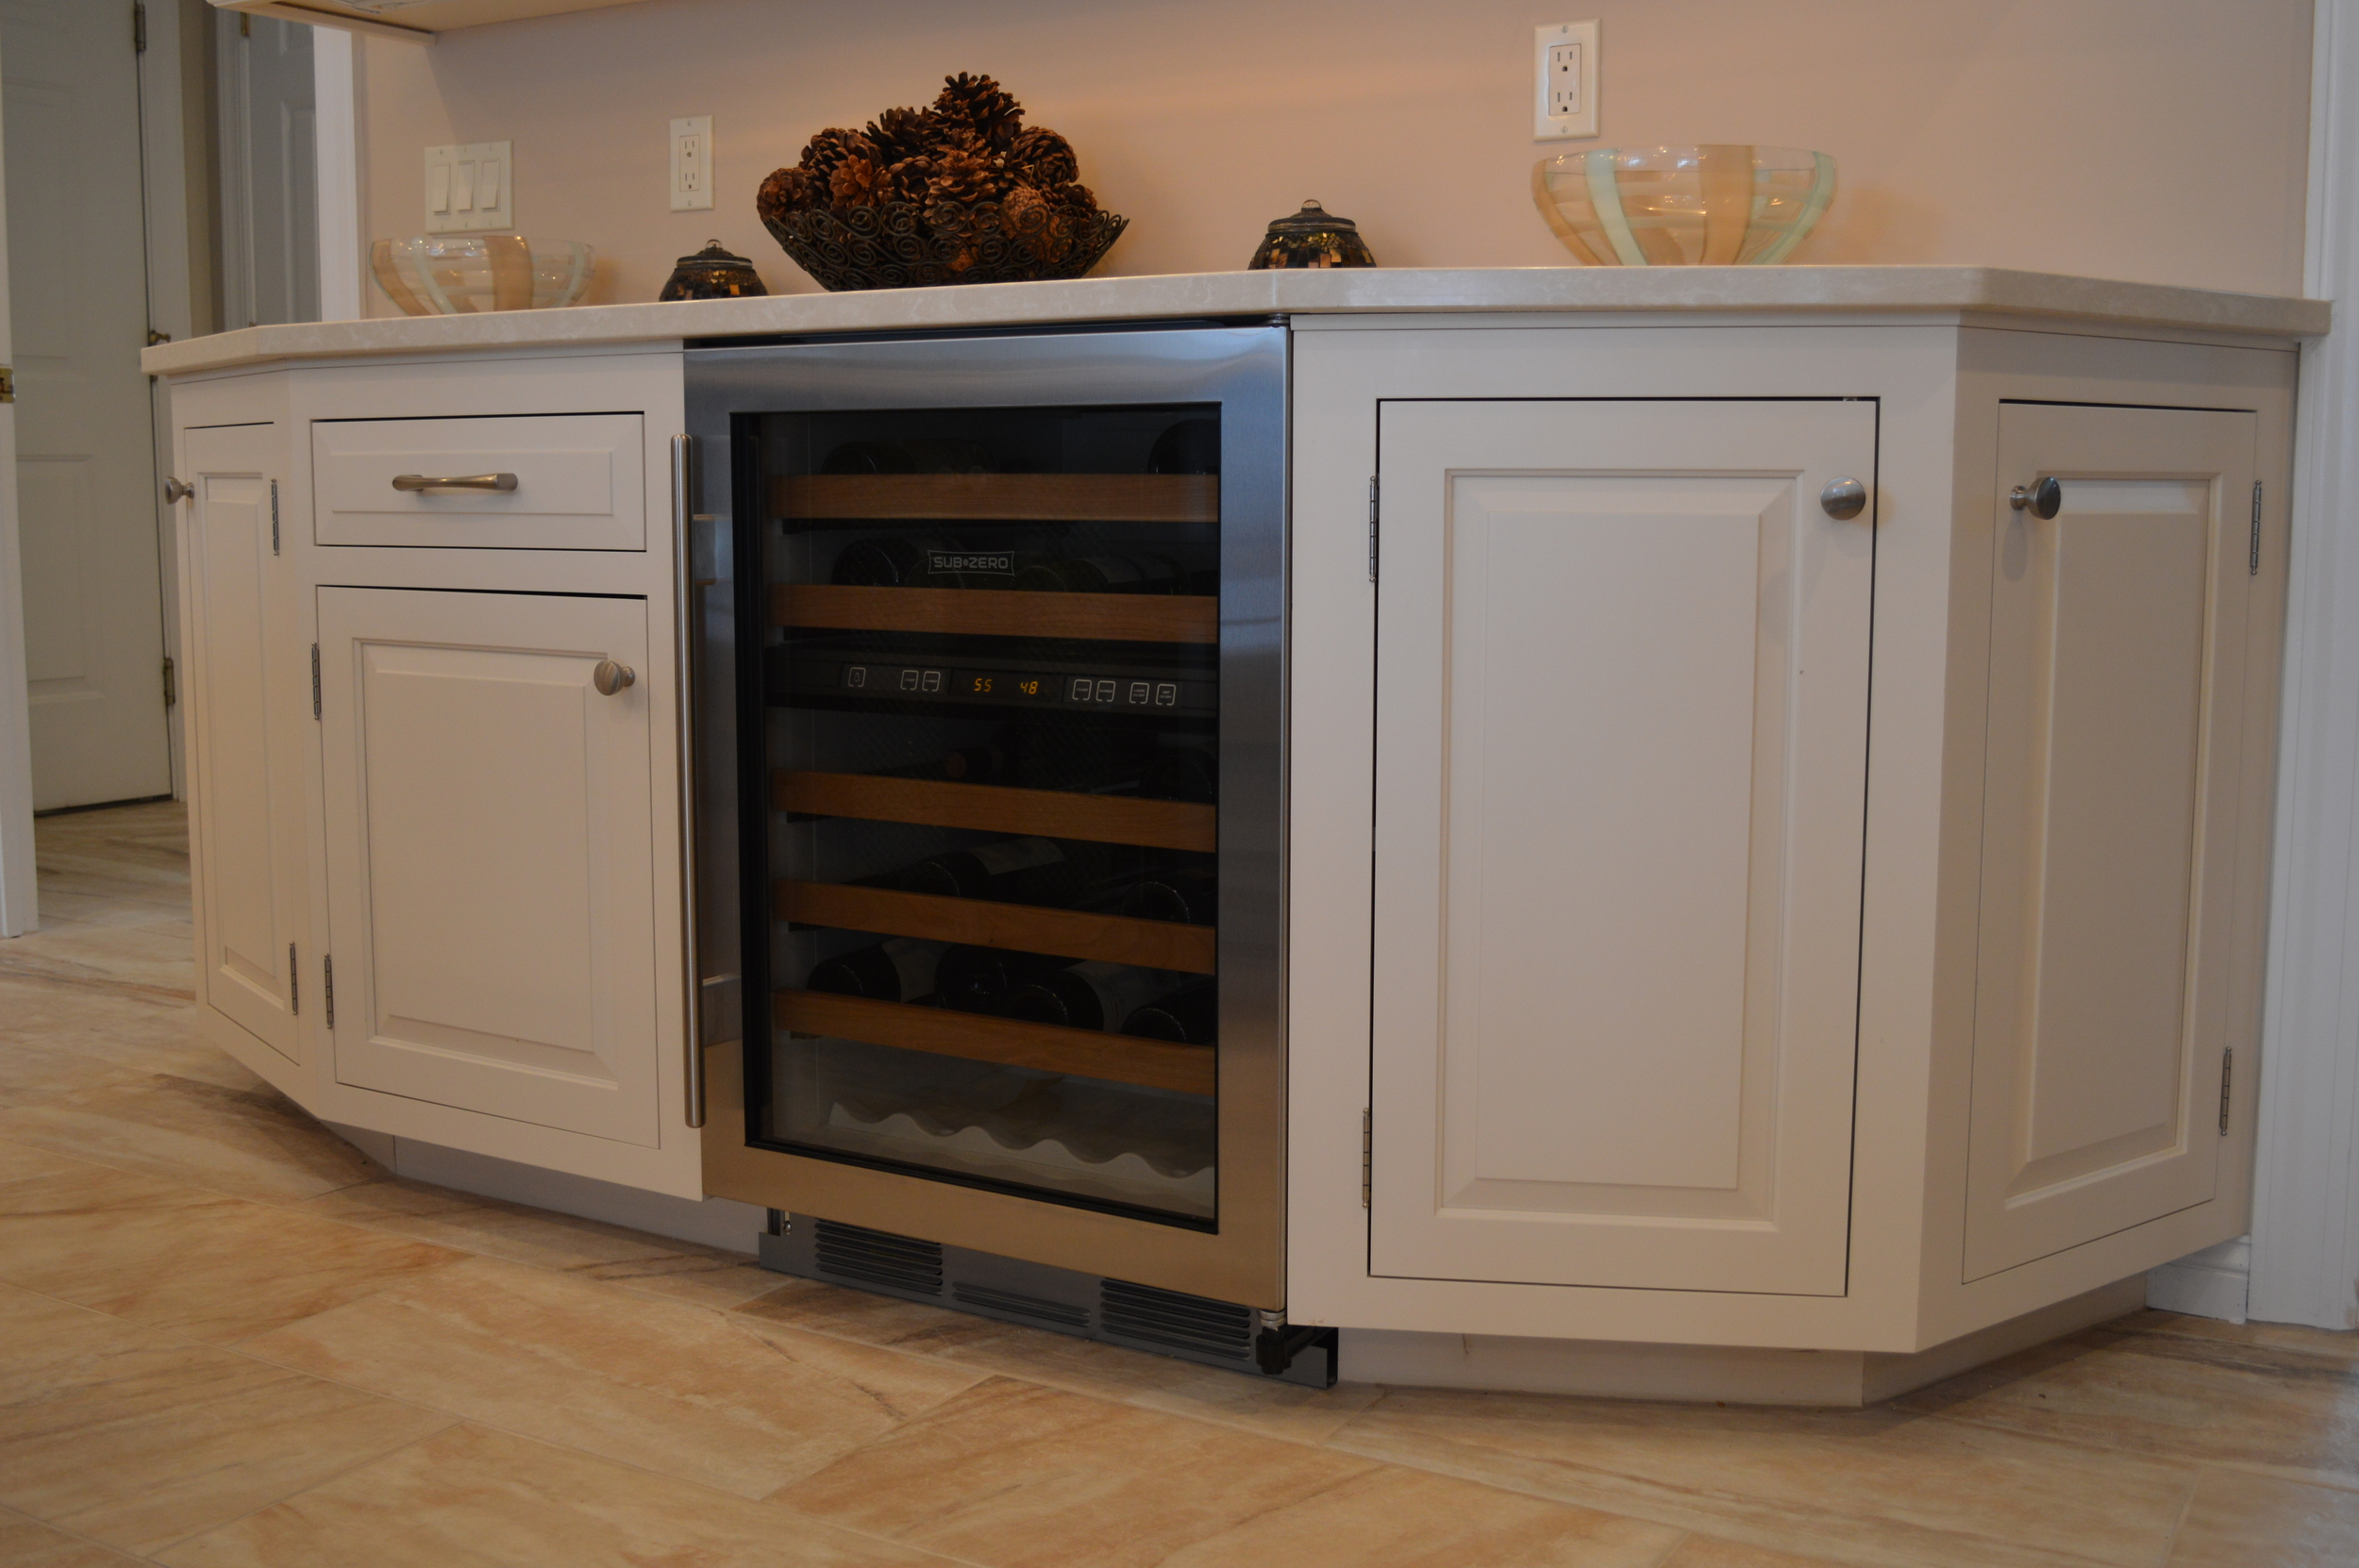 Angled White Kitchen Base Cabinets - Built in Wine Refrigerator